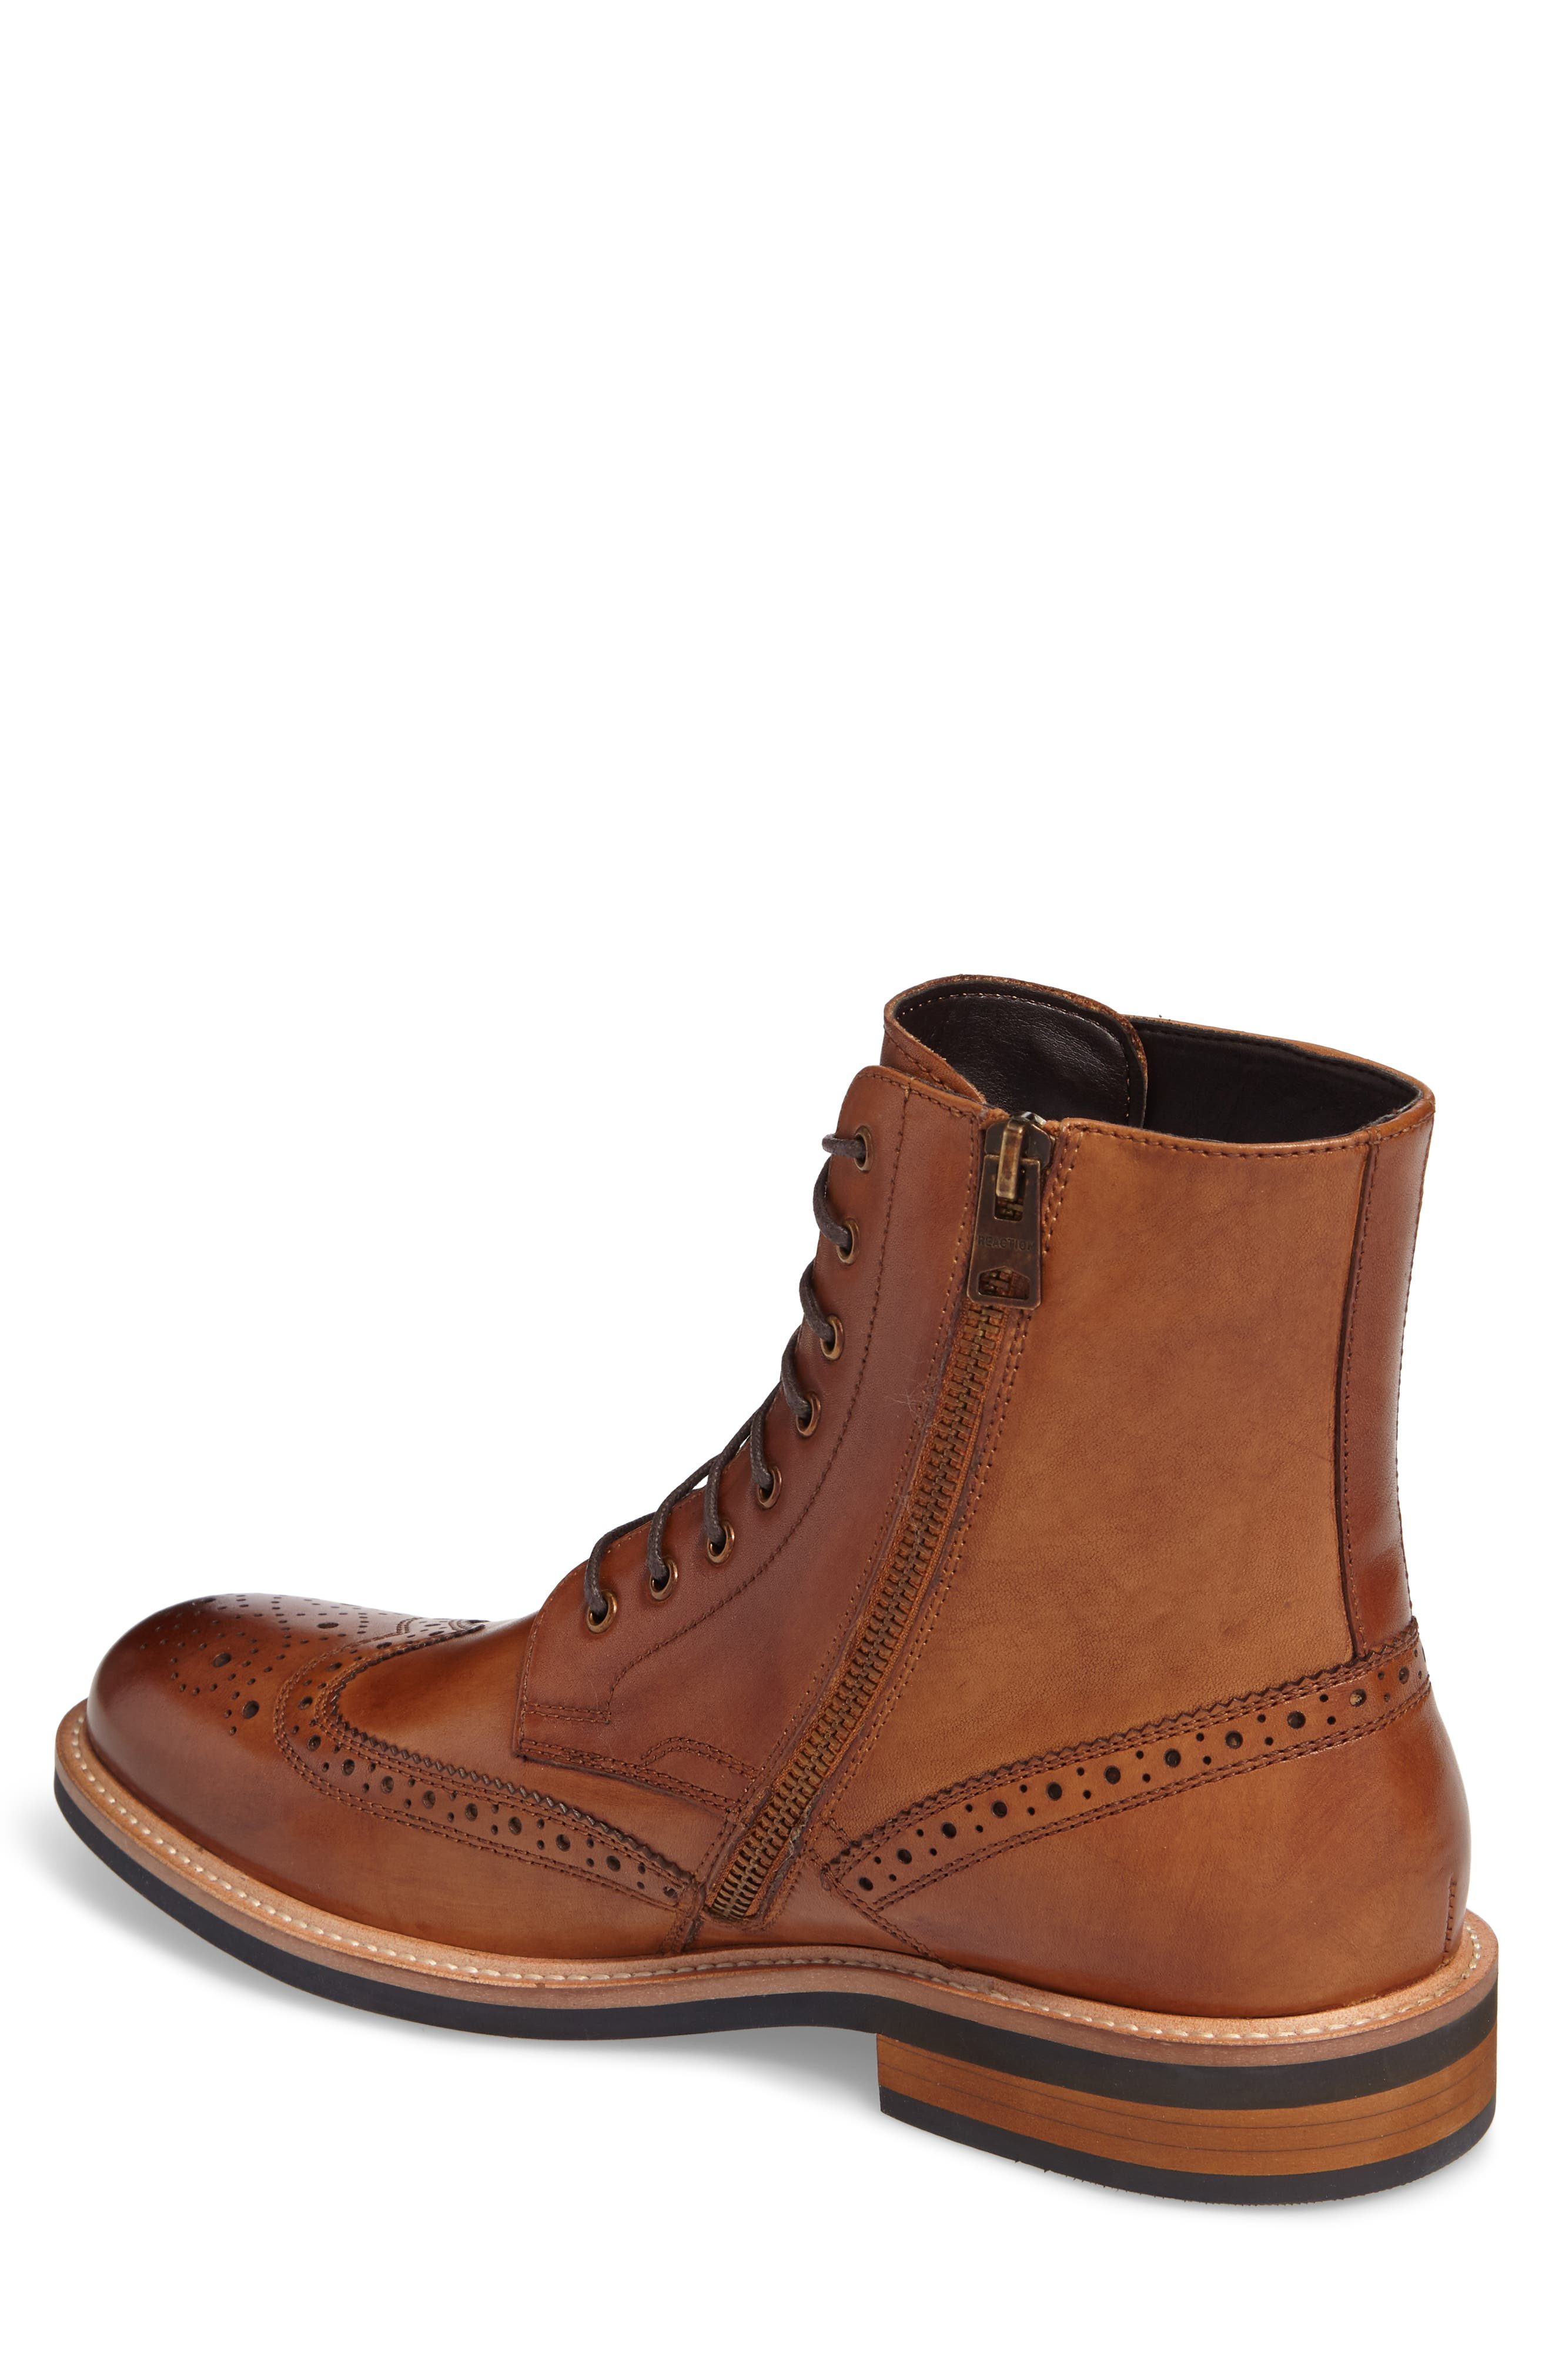 Kenneth Cole Reaction Wingtip Boot,                             Alternate thumbnail 2, color,